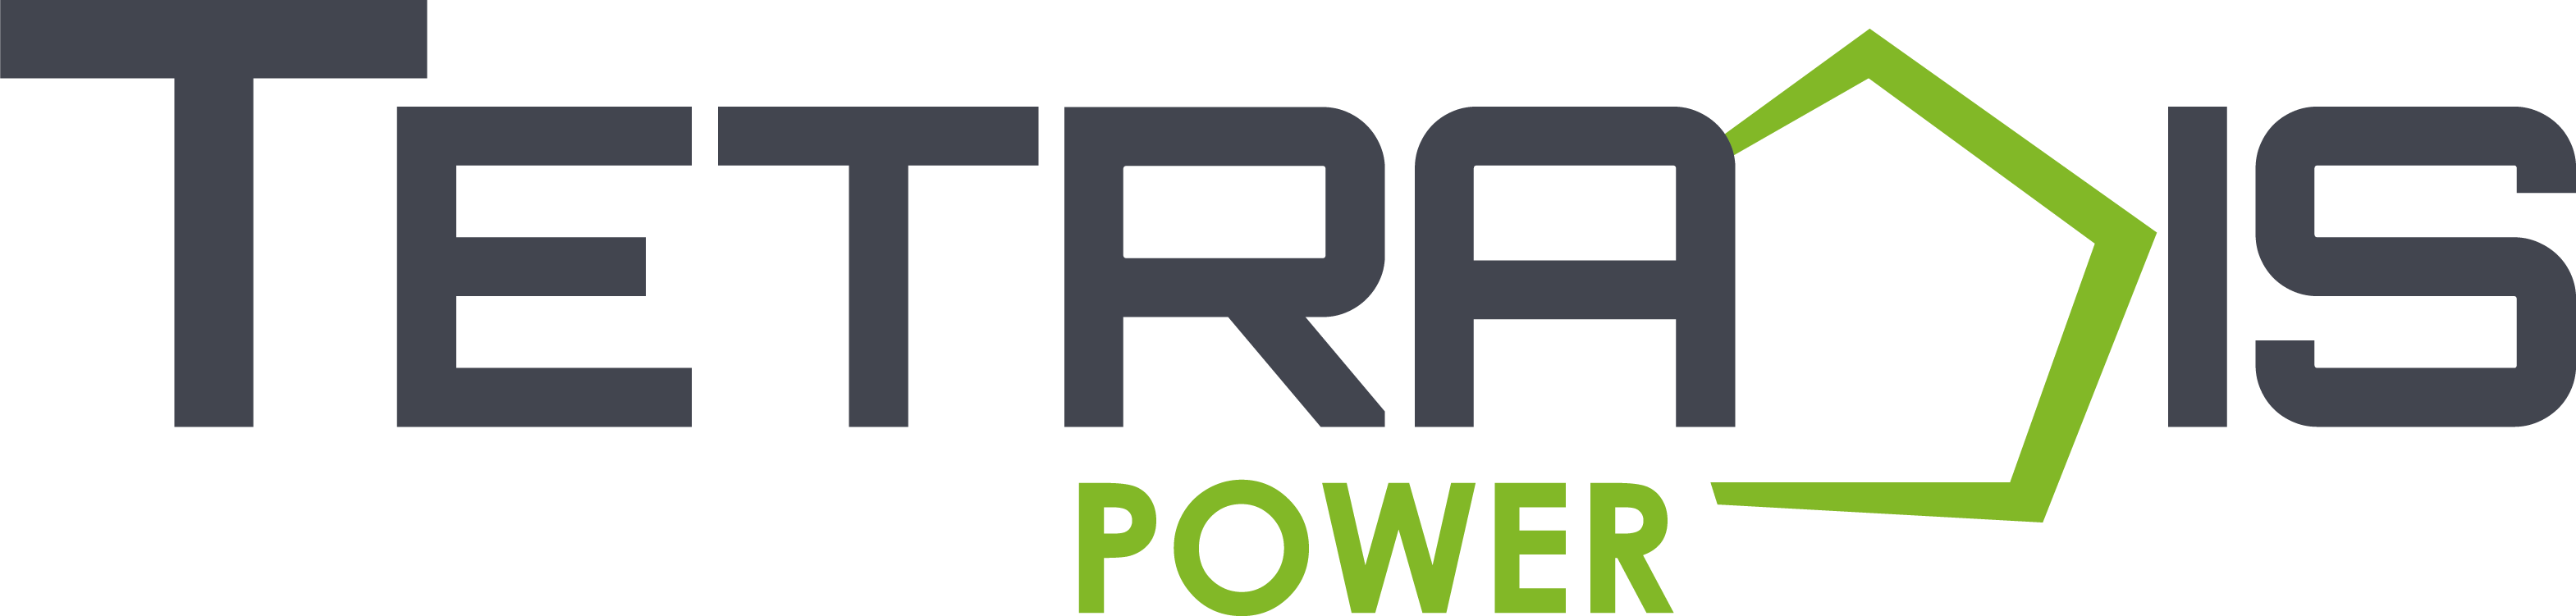 TETRADIS POWER Solutions